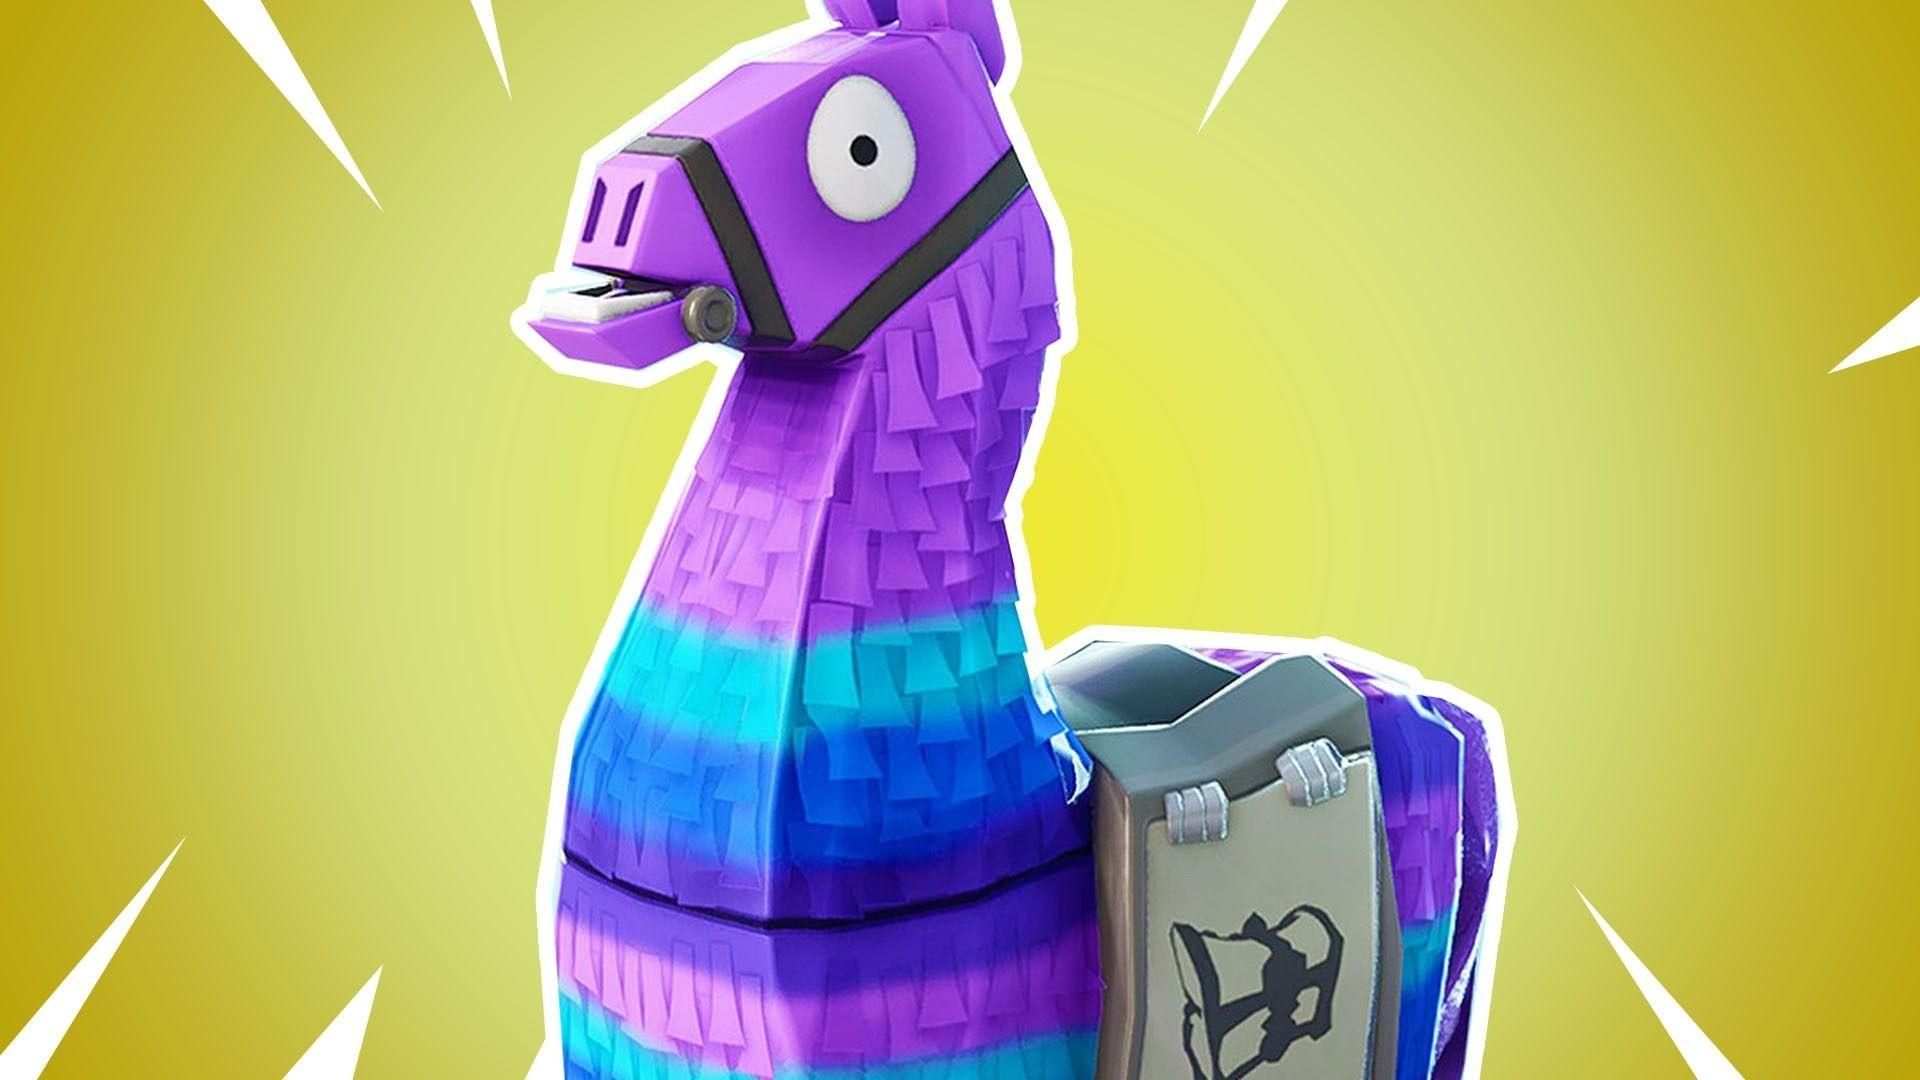 Fortnite Llama Wallpapers 4k Hd PC Iphone Android